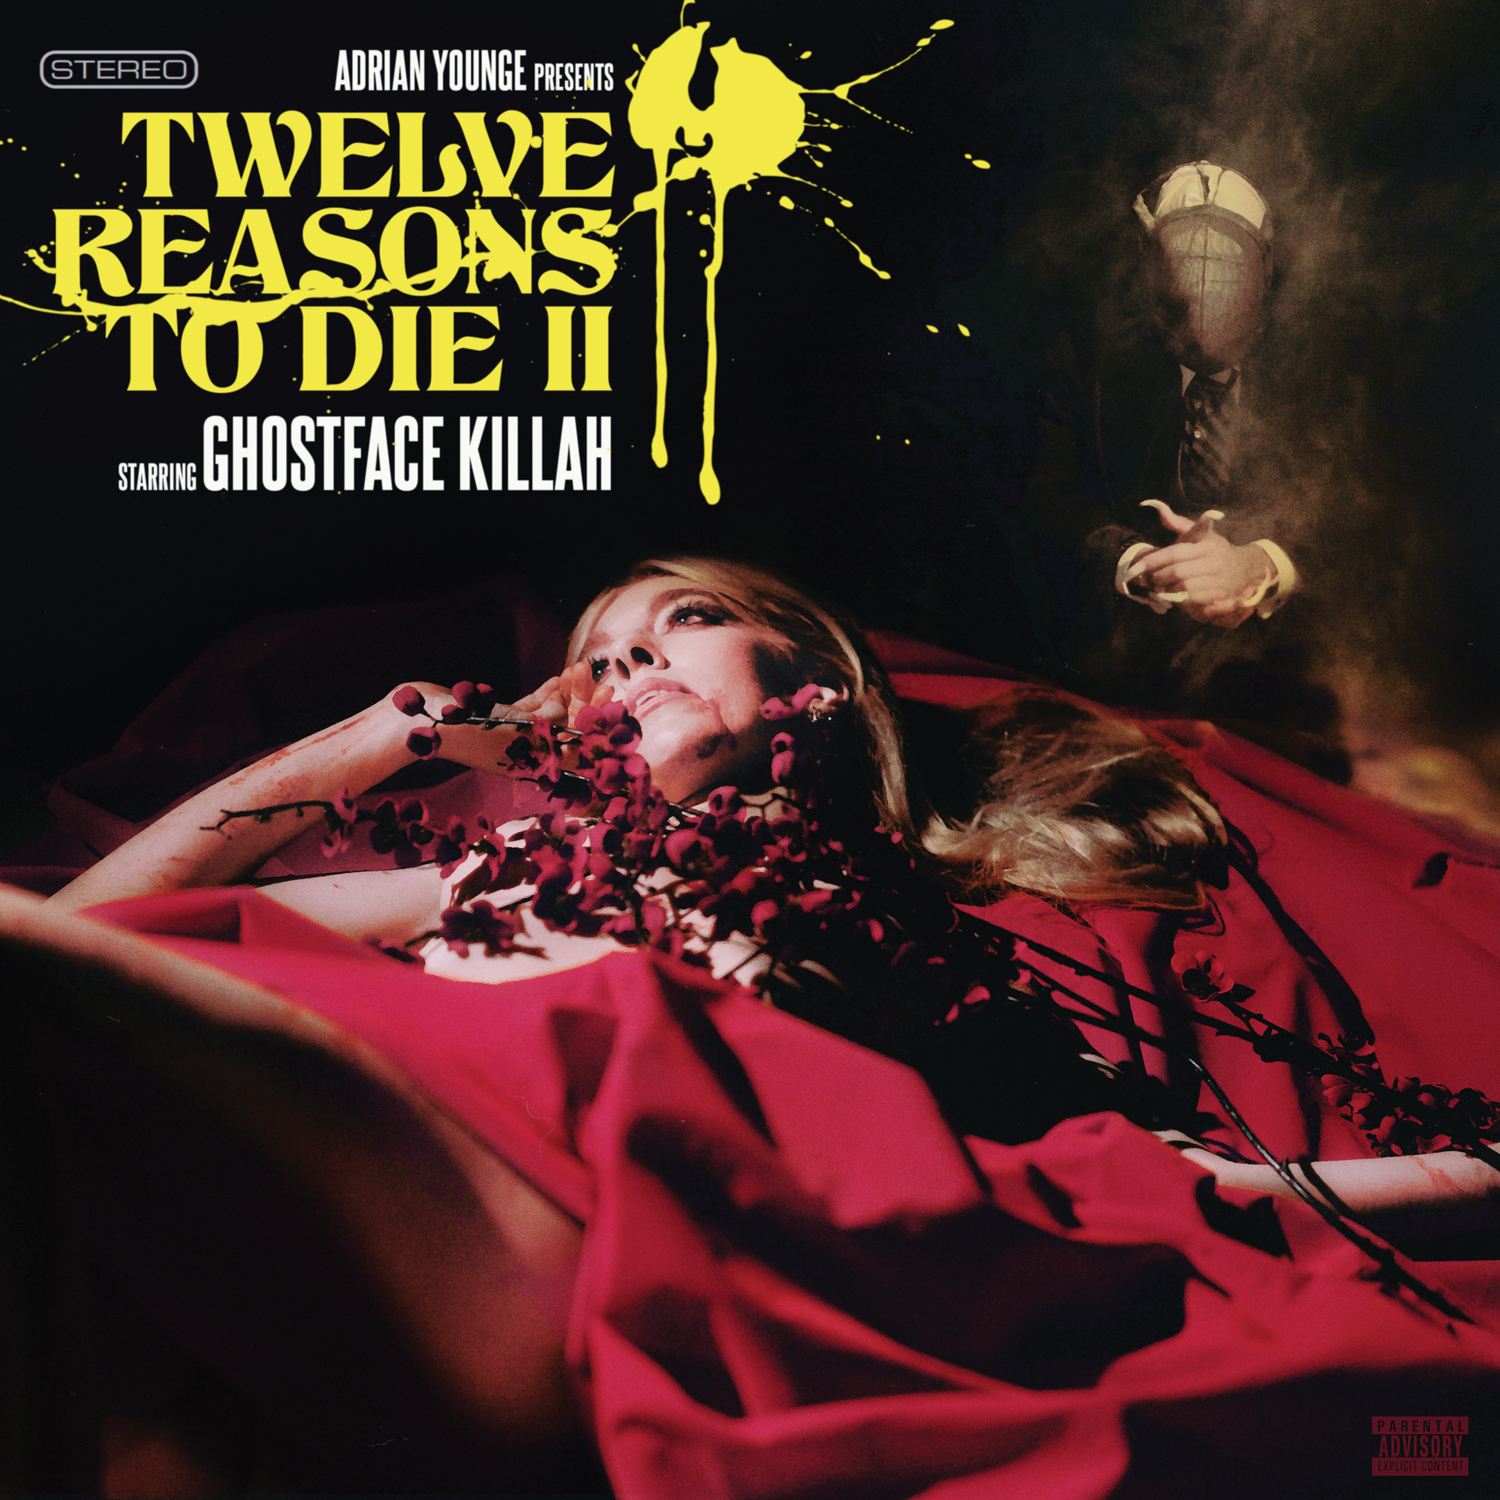 Chronique Ghostface Killah Twelve Reasons To Die Ii